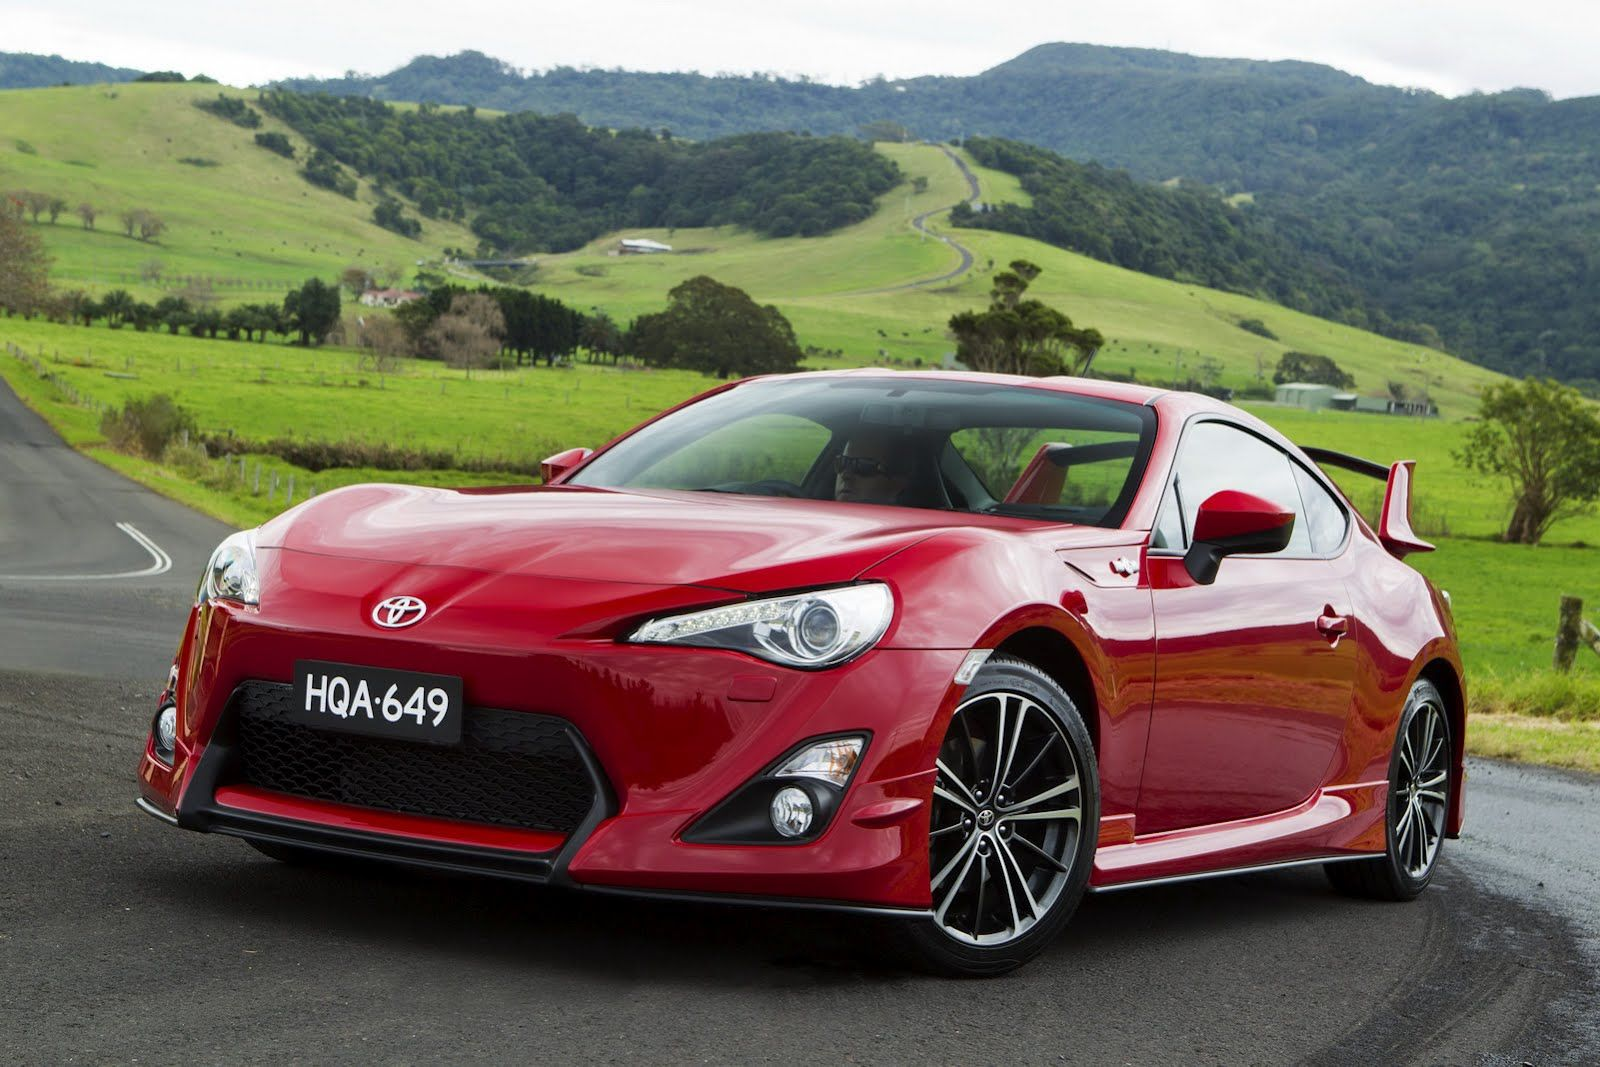 new car releases australia 2014Toyota Launches New Aero Kit with Giant Rear Wing for 86 Sports